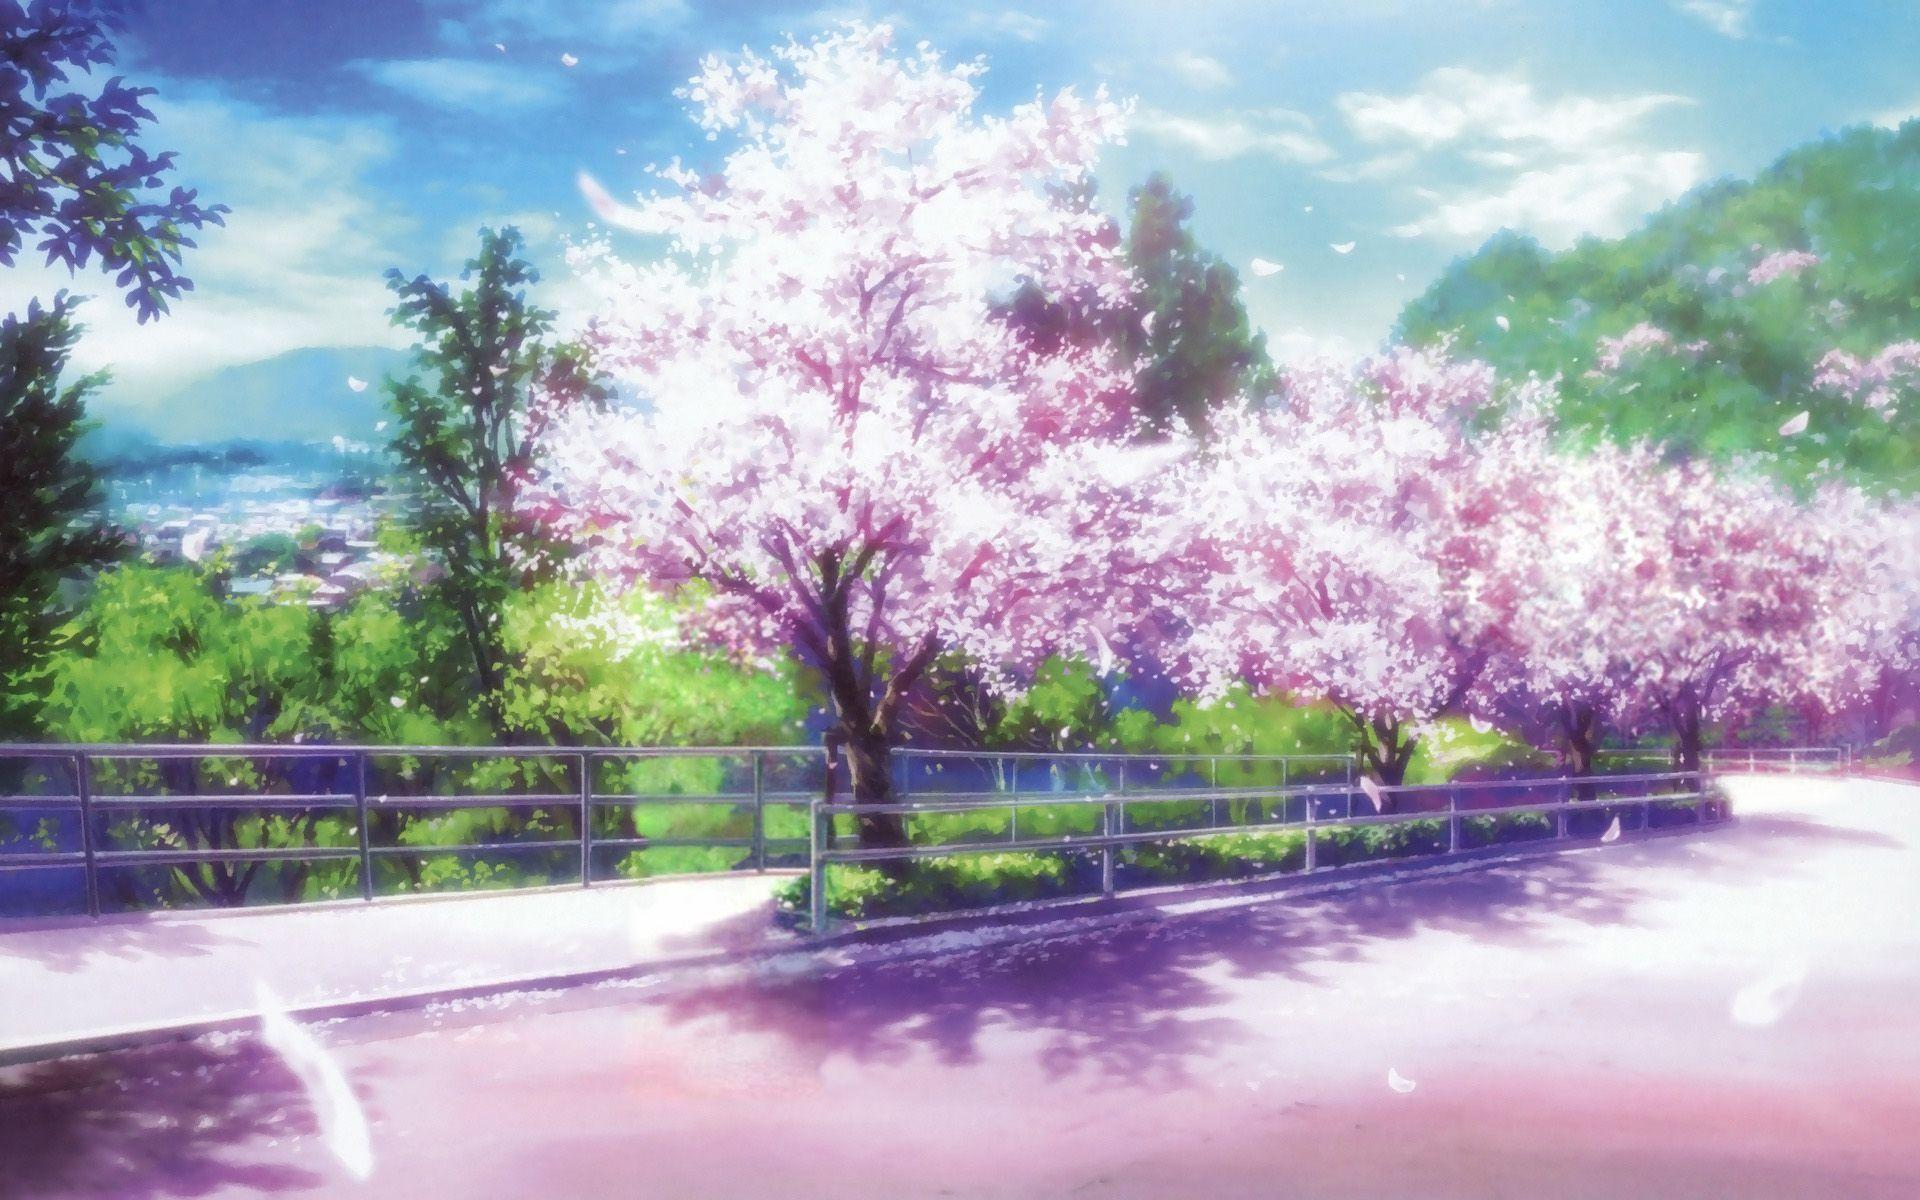 Movies these days are a lot flashier than they are substantial. Anime Sakura Trees HD Wallpapers - Wallpaper Cave